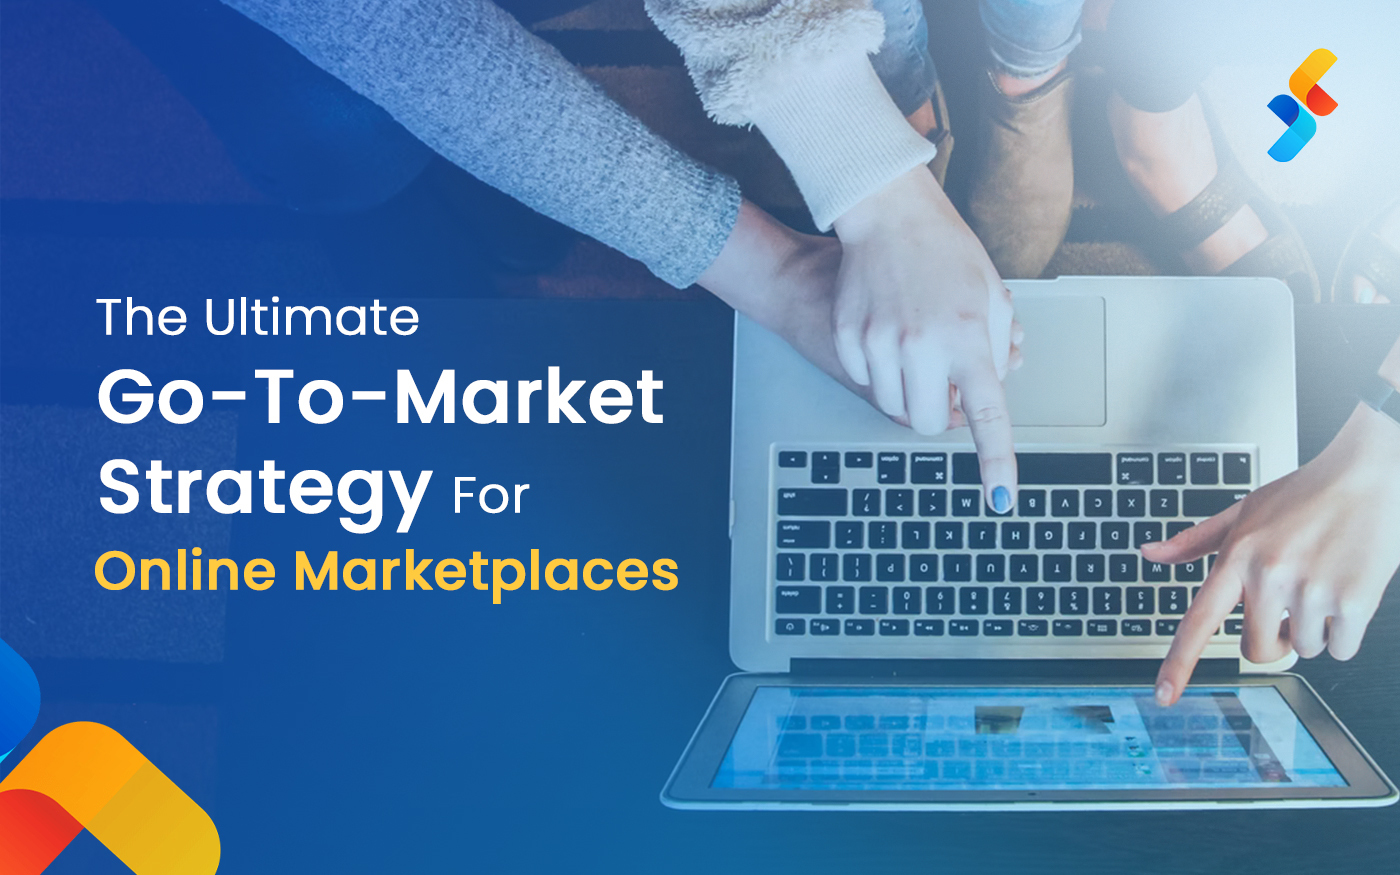 The Ultimate Go-To-Market Strategy for Your Online Marketplace